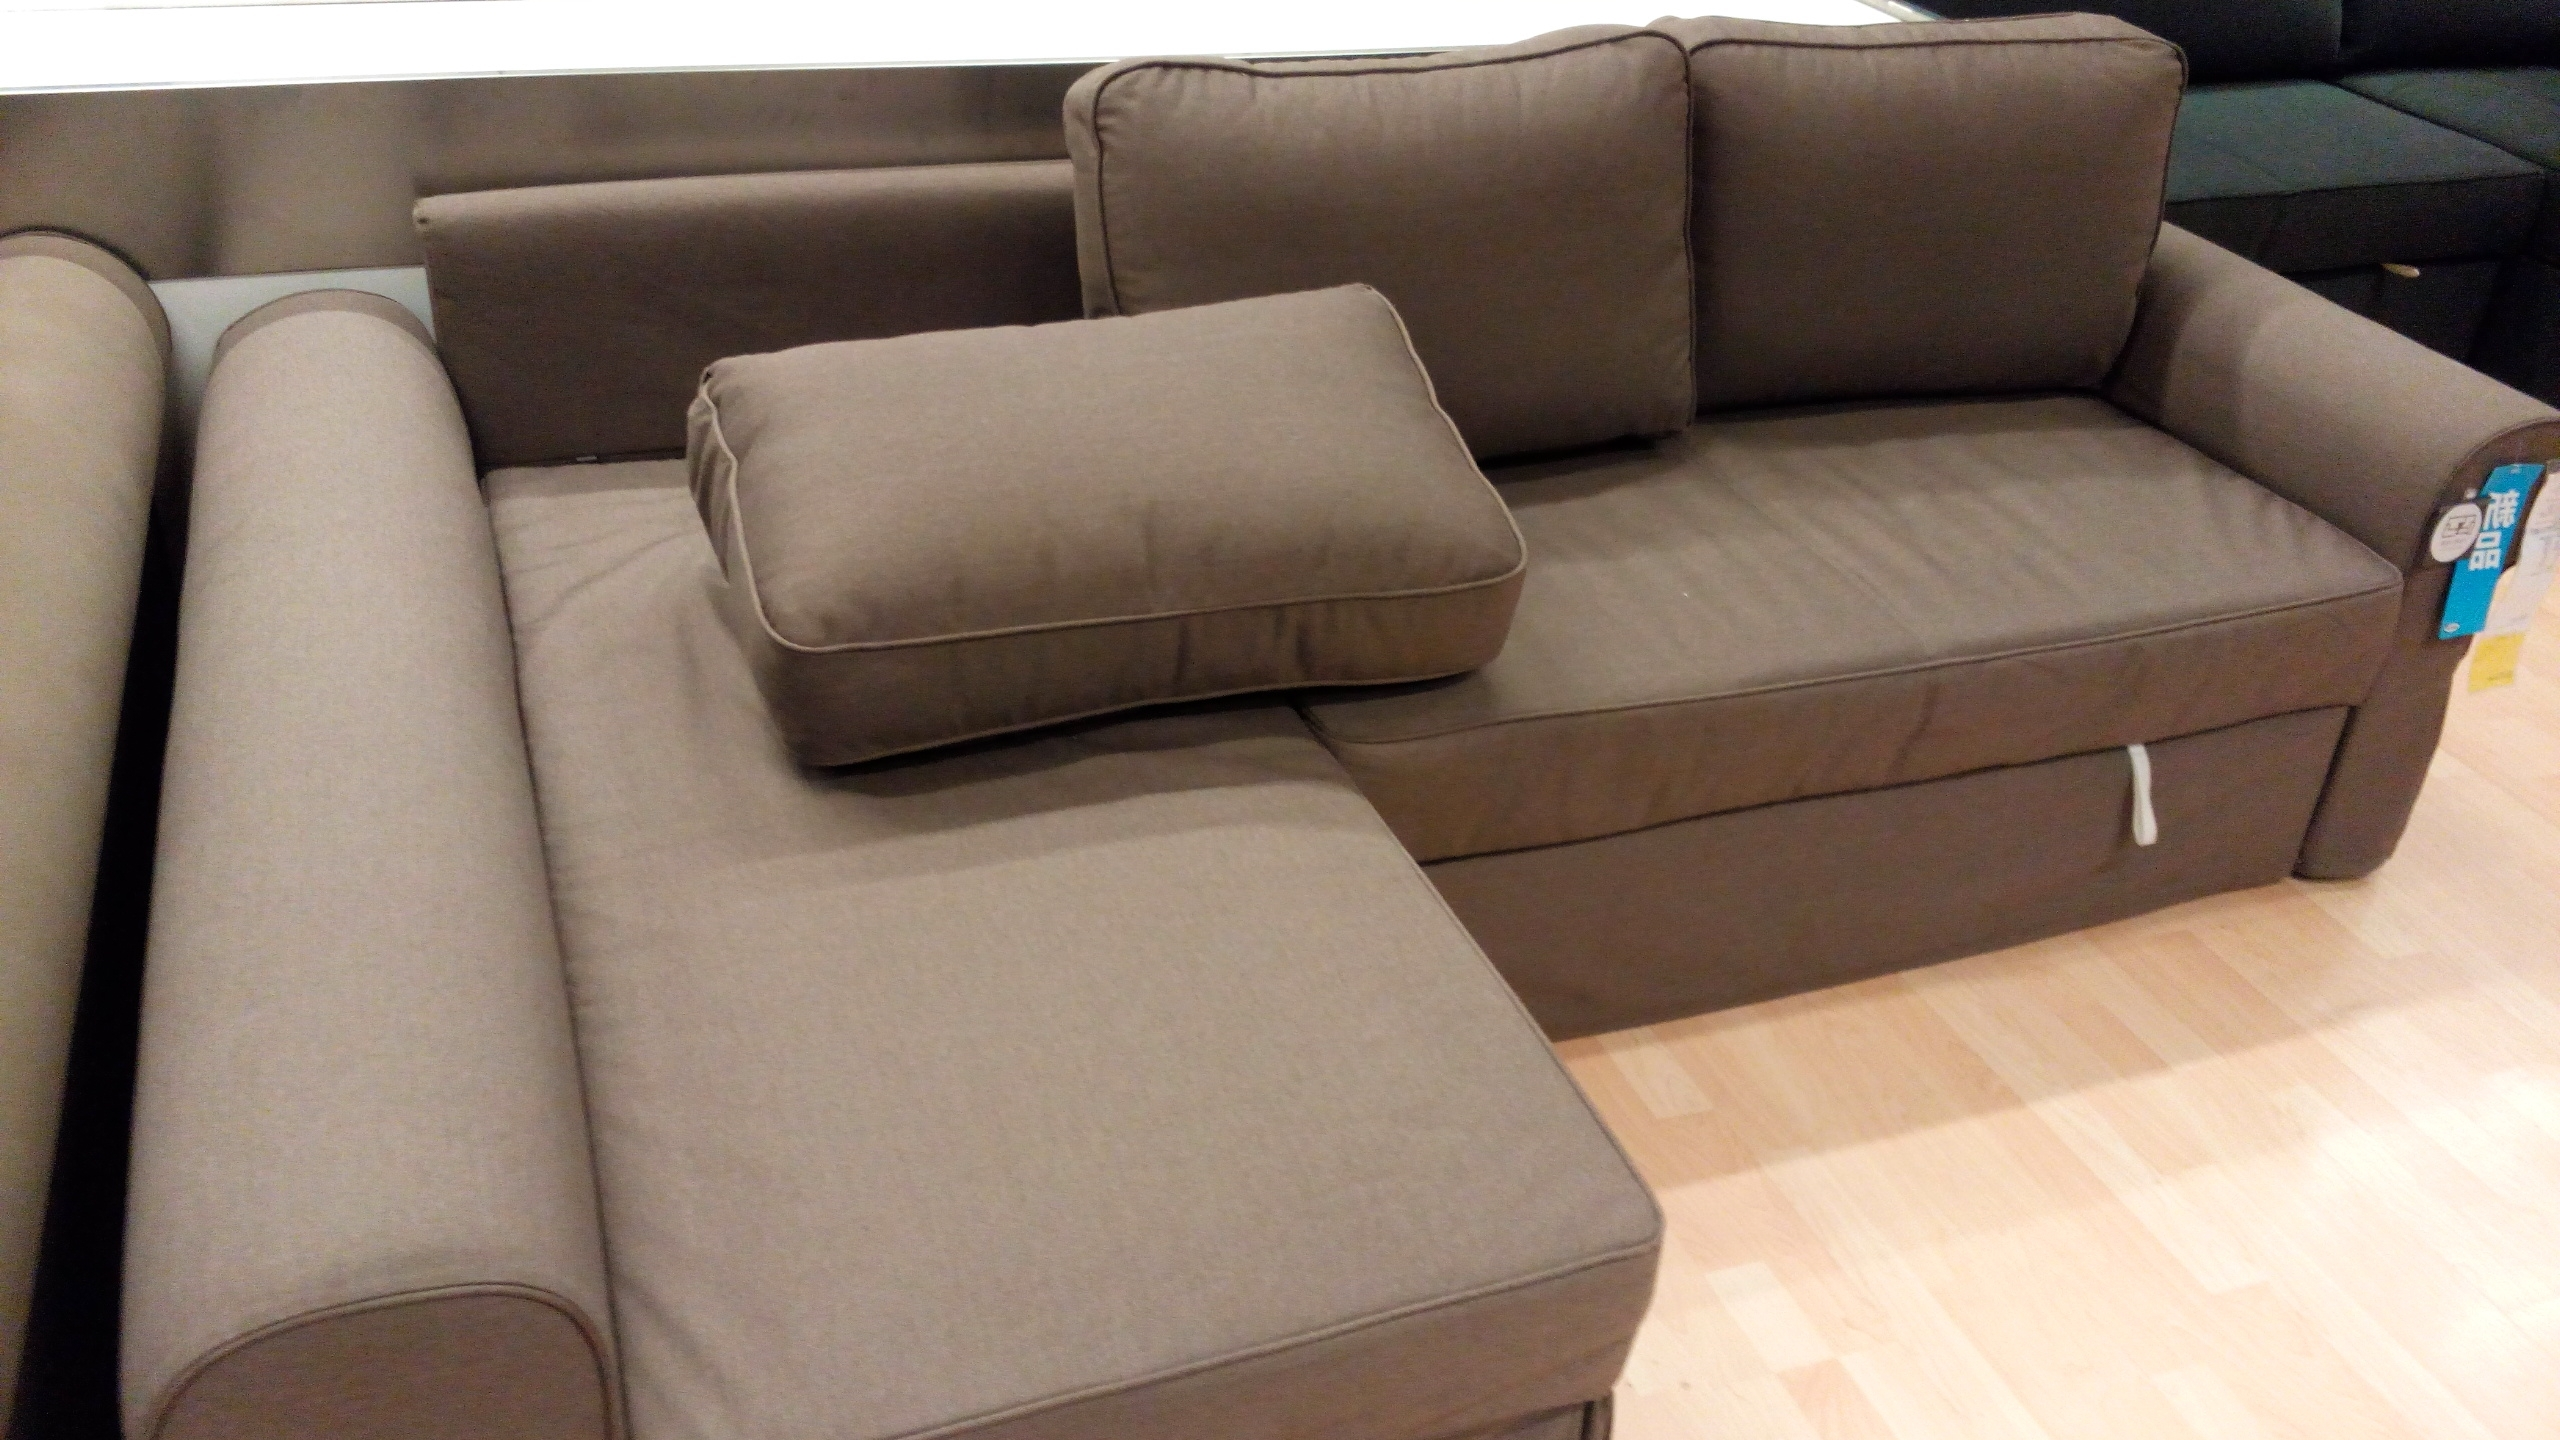 Sectional Sofa Design: Sectional Sofa Bed Ikea Best Design Sofa Regarding Most Popular Ikea Sectional Sofa Beds (View 14 of 20)